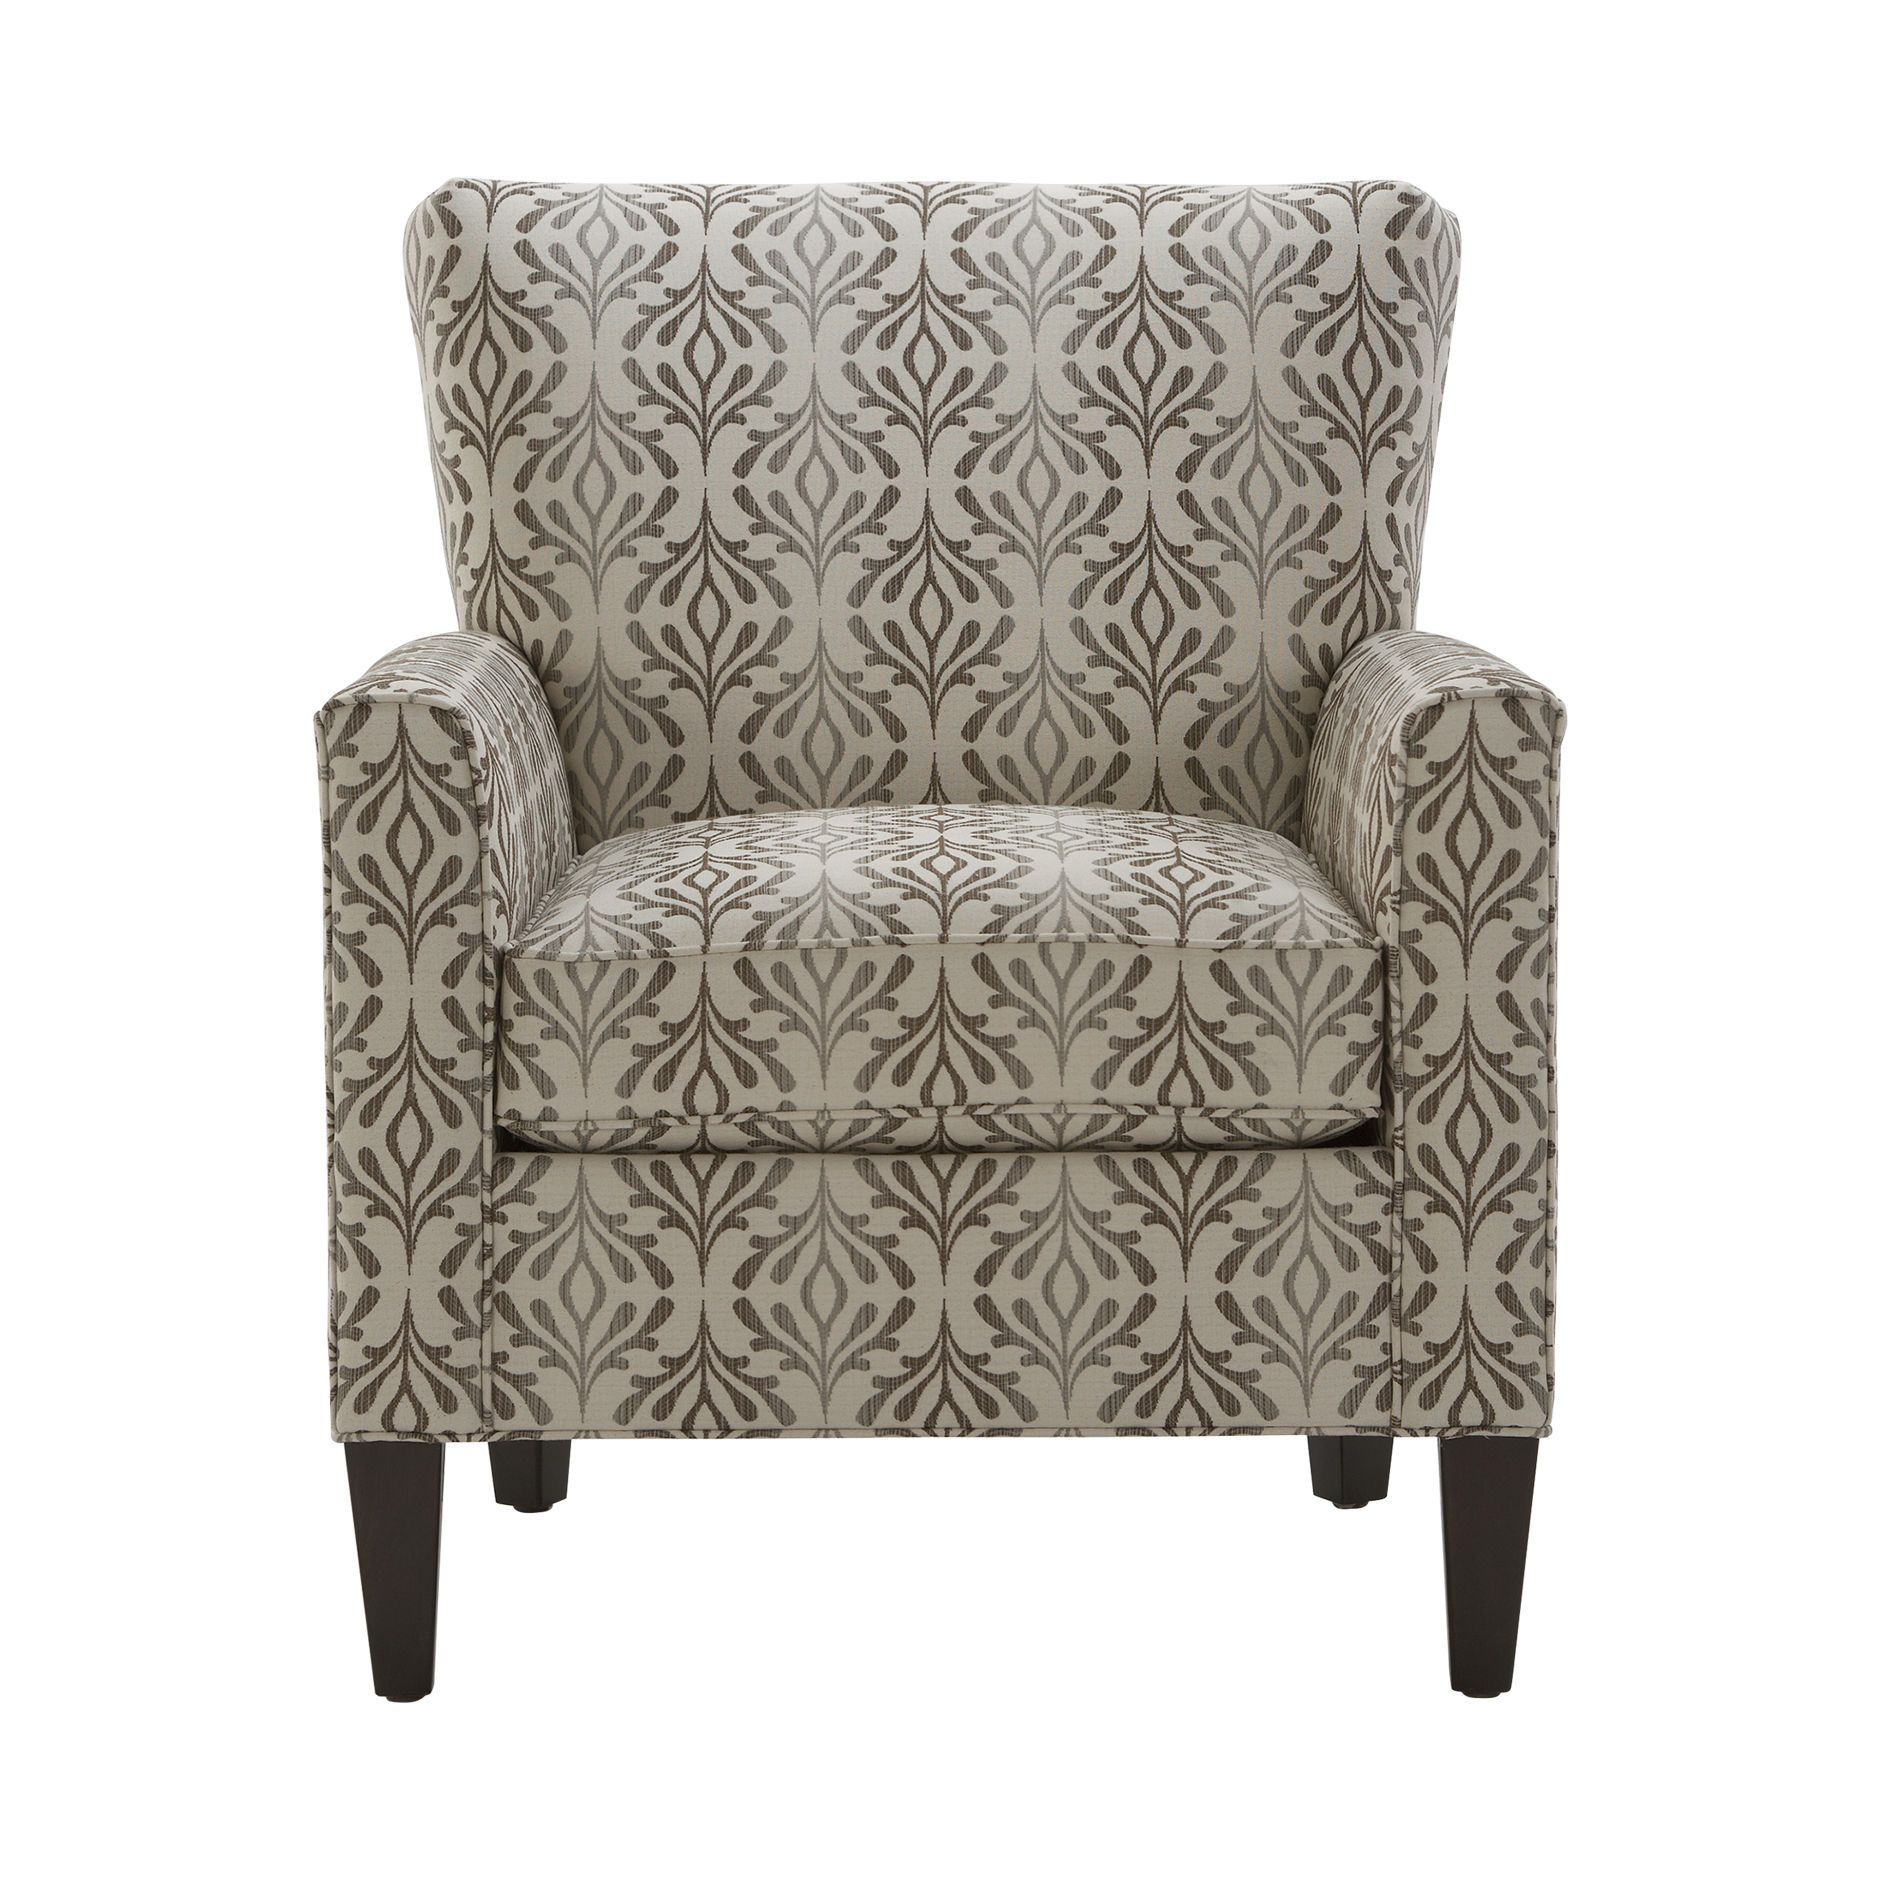 Love this fabric pattern and the style of the chair, Collin Chair ...